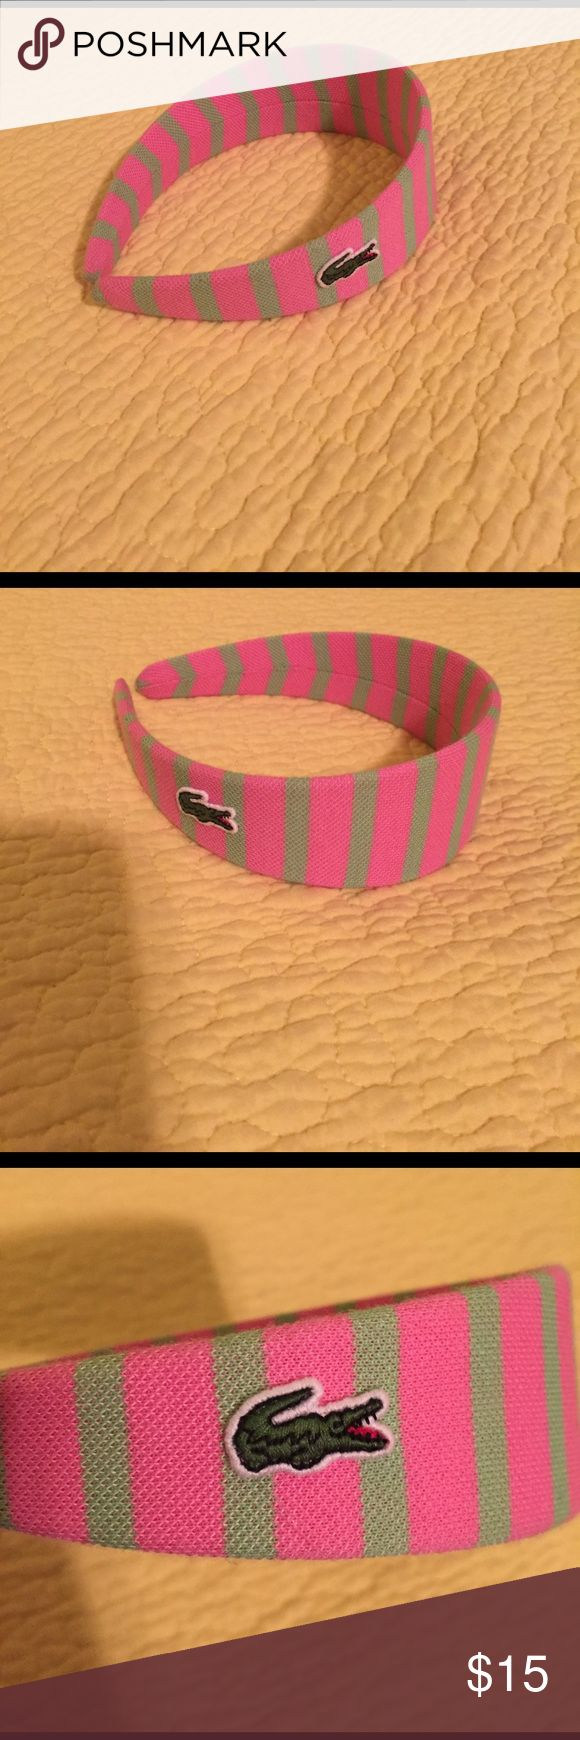 Lacoste Lacoste pink and green head band Lacoste Accessories Hair Accessories